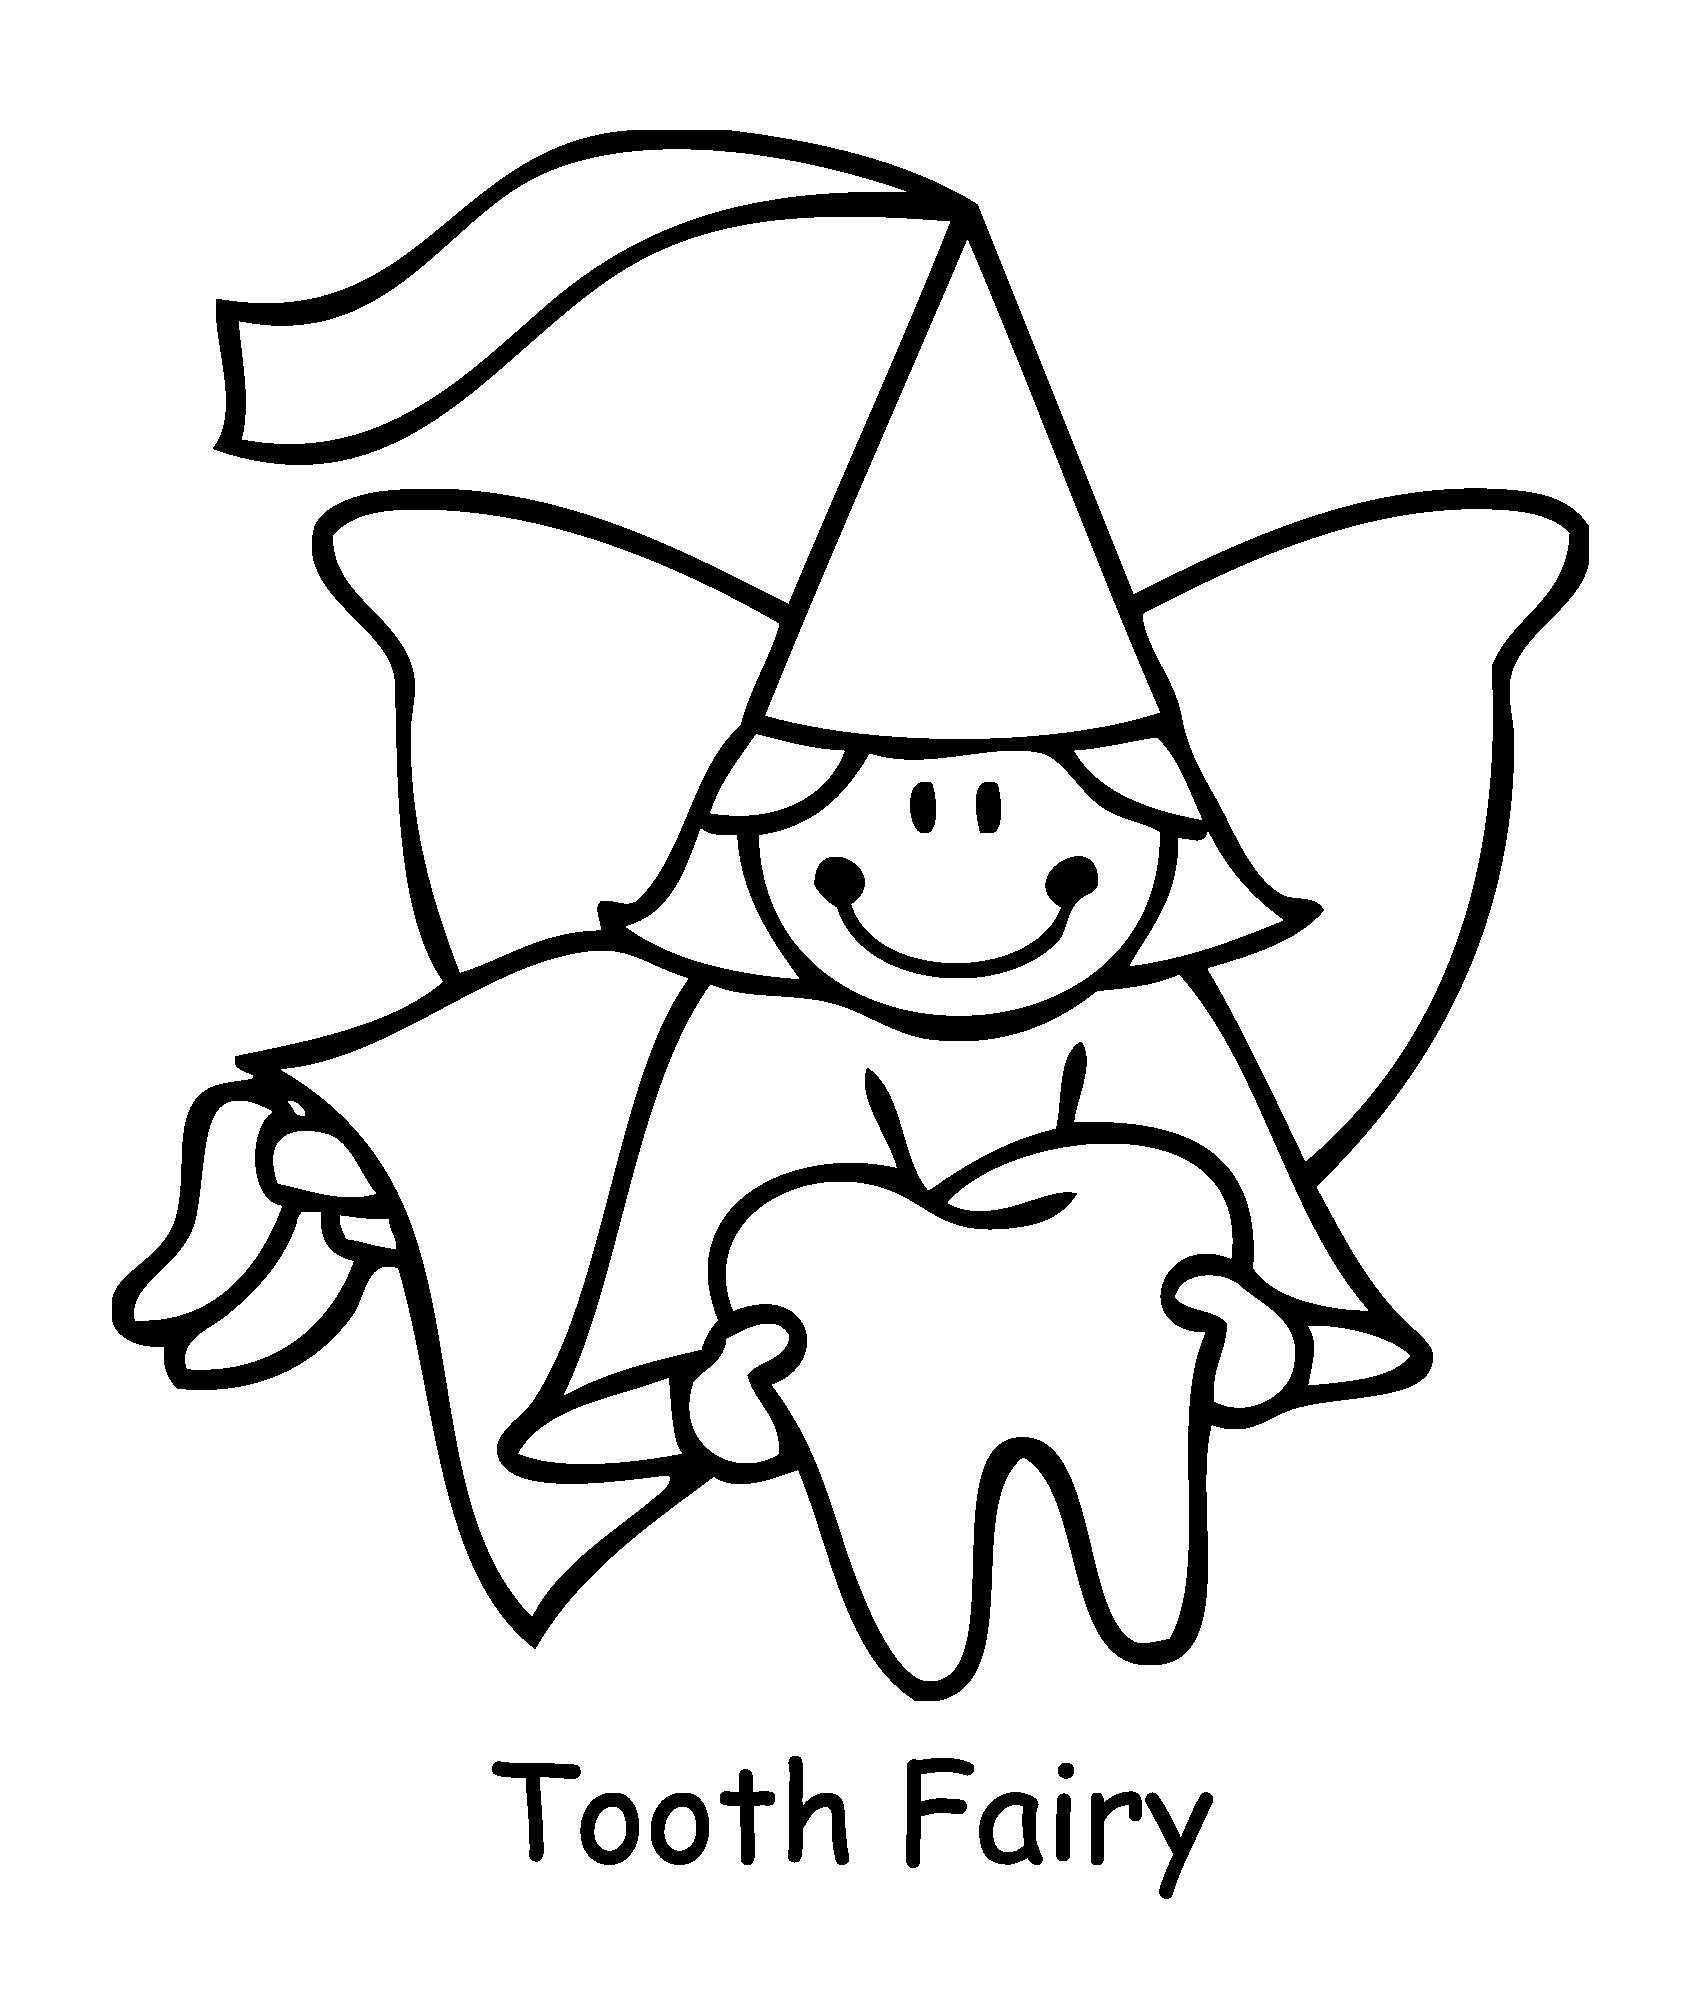 1701x2005 Tooth Fairy Coloring Pages